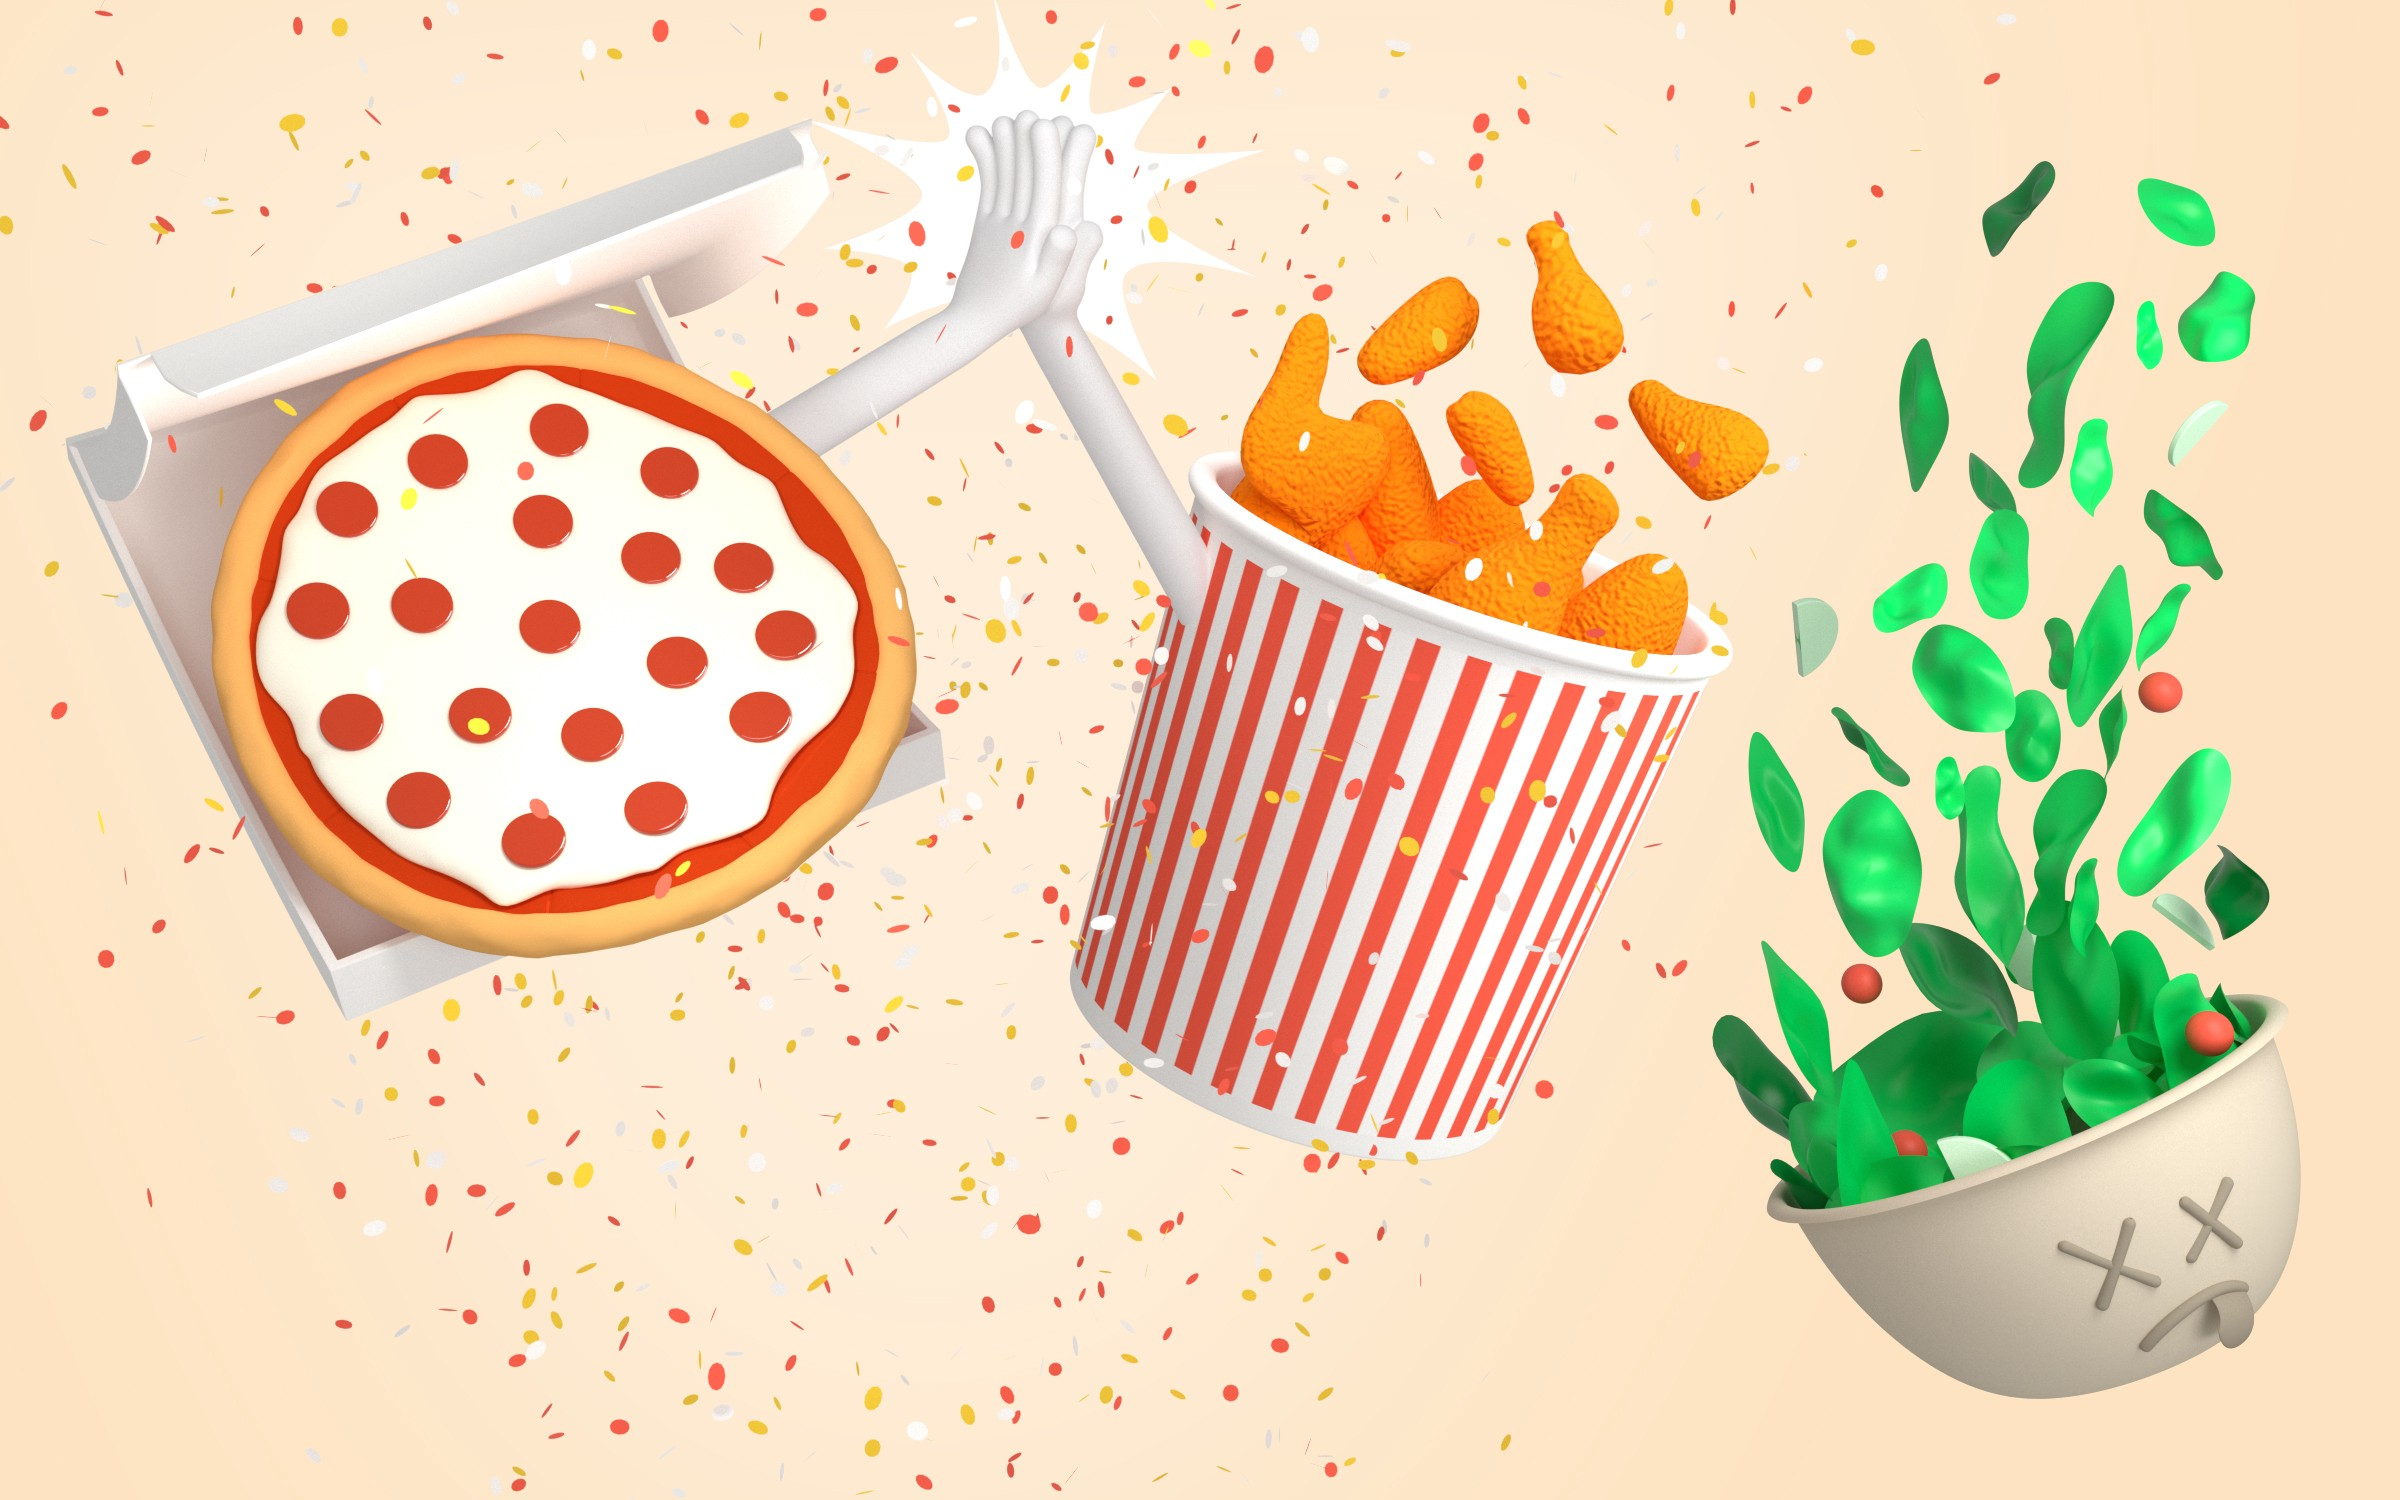 A pizza box, a bucket of drumsticks, and a salad bowl in free fall, as the pizza and drumsticks bucket high-five each other.